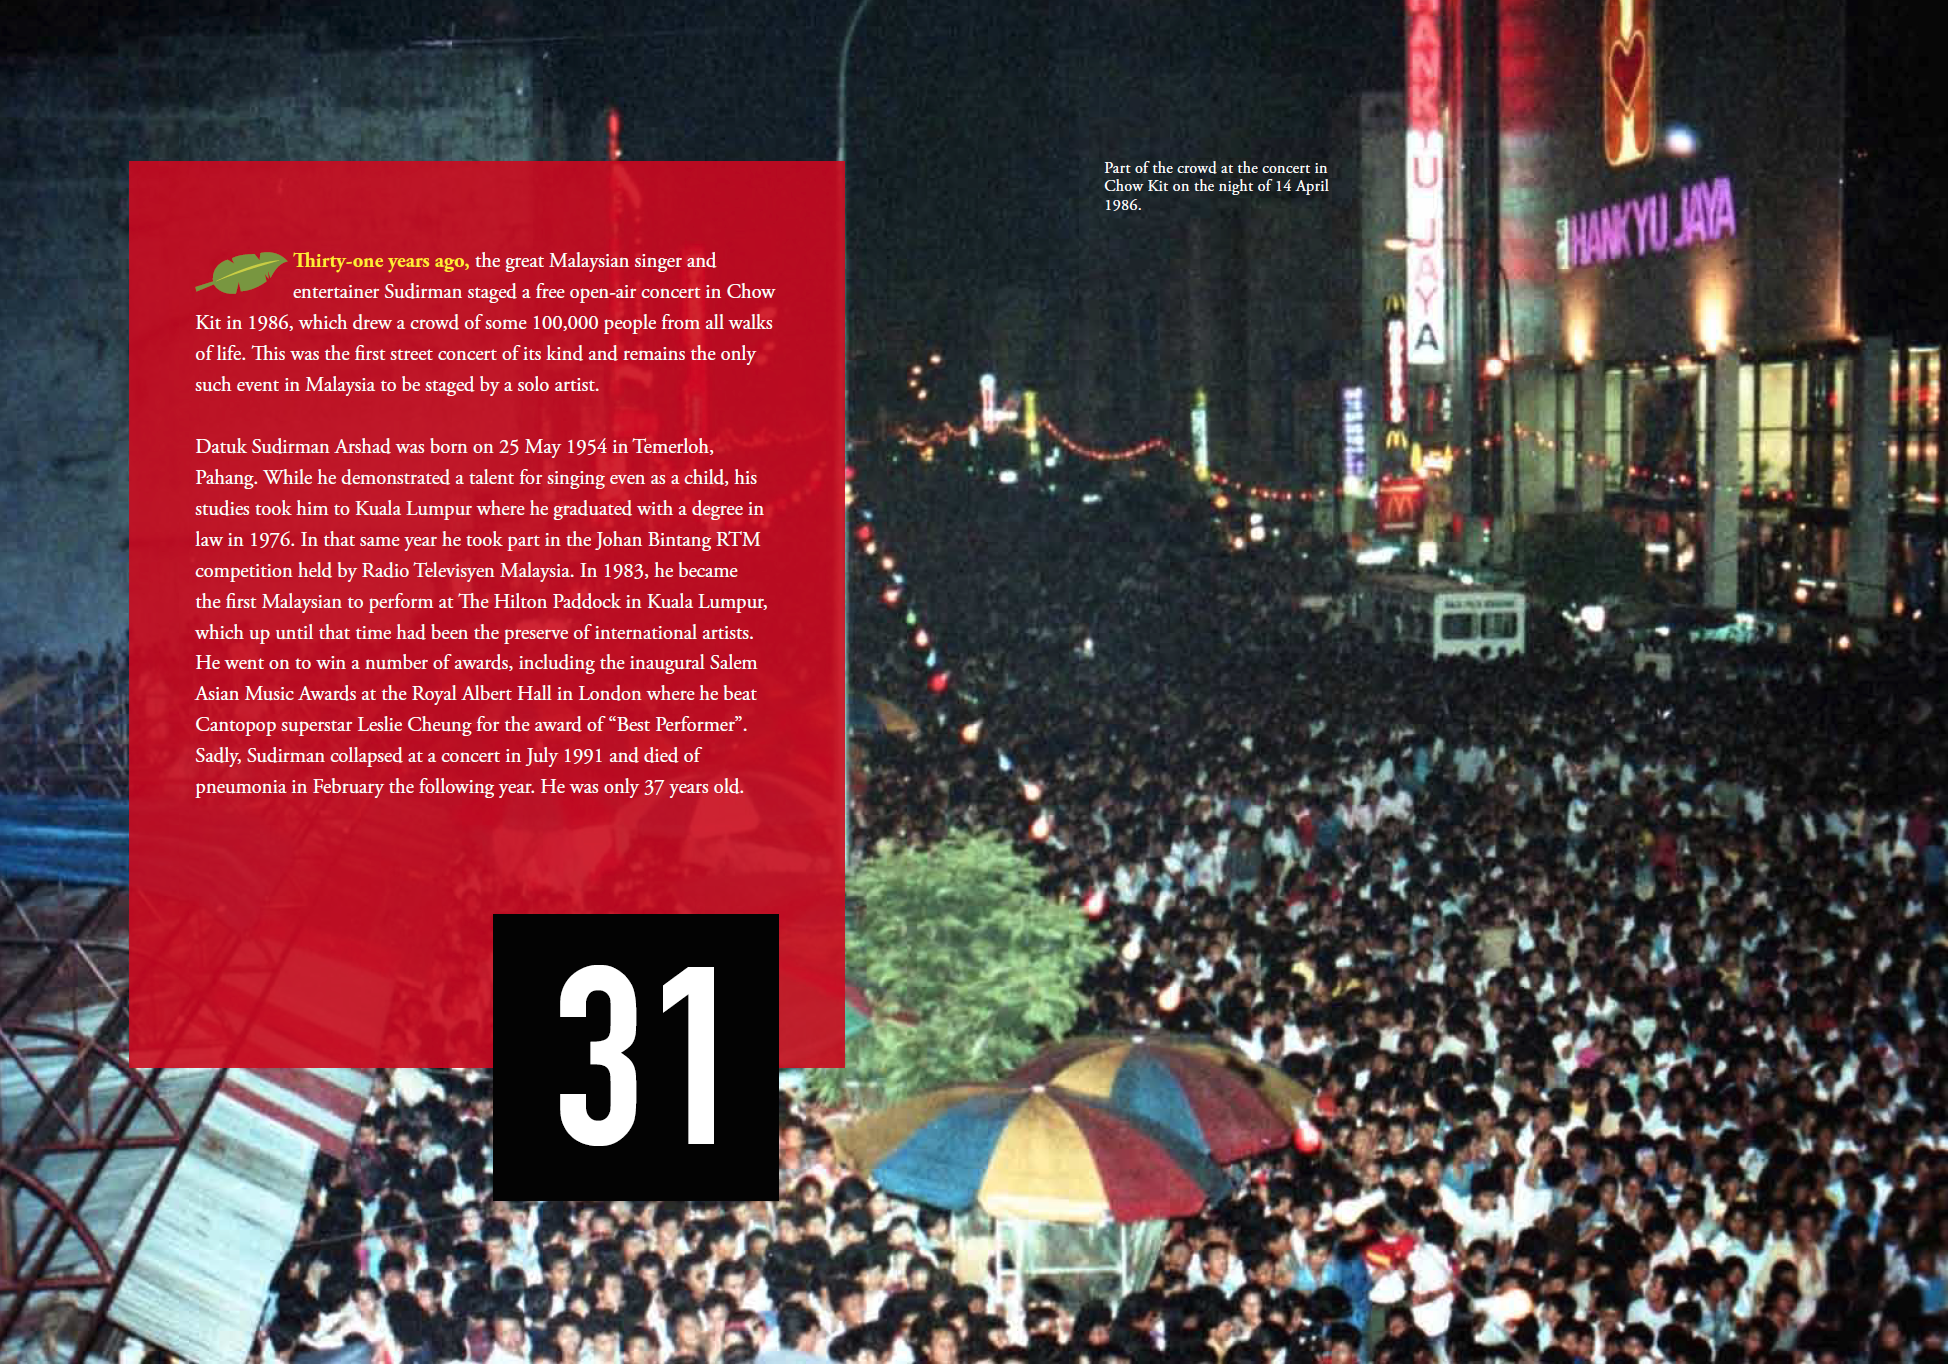 #31: The biggest Malaysian street concert of all time.